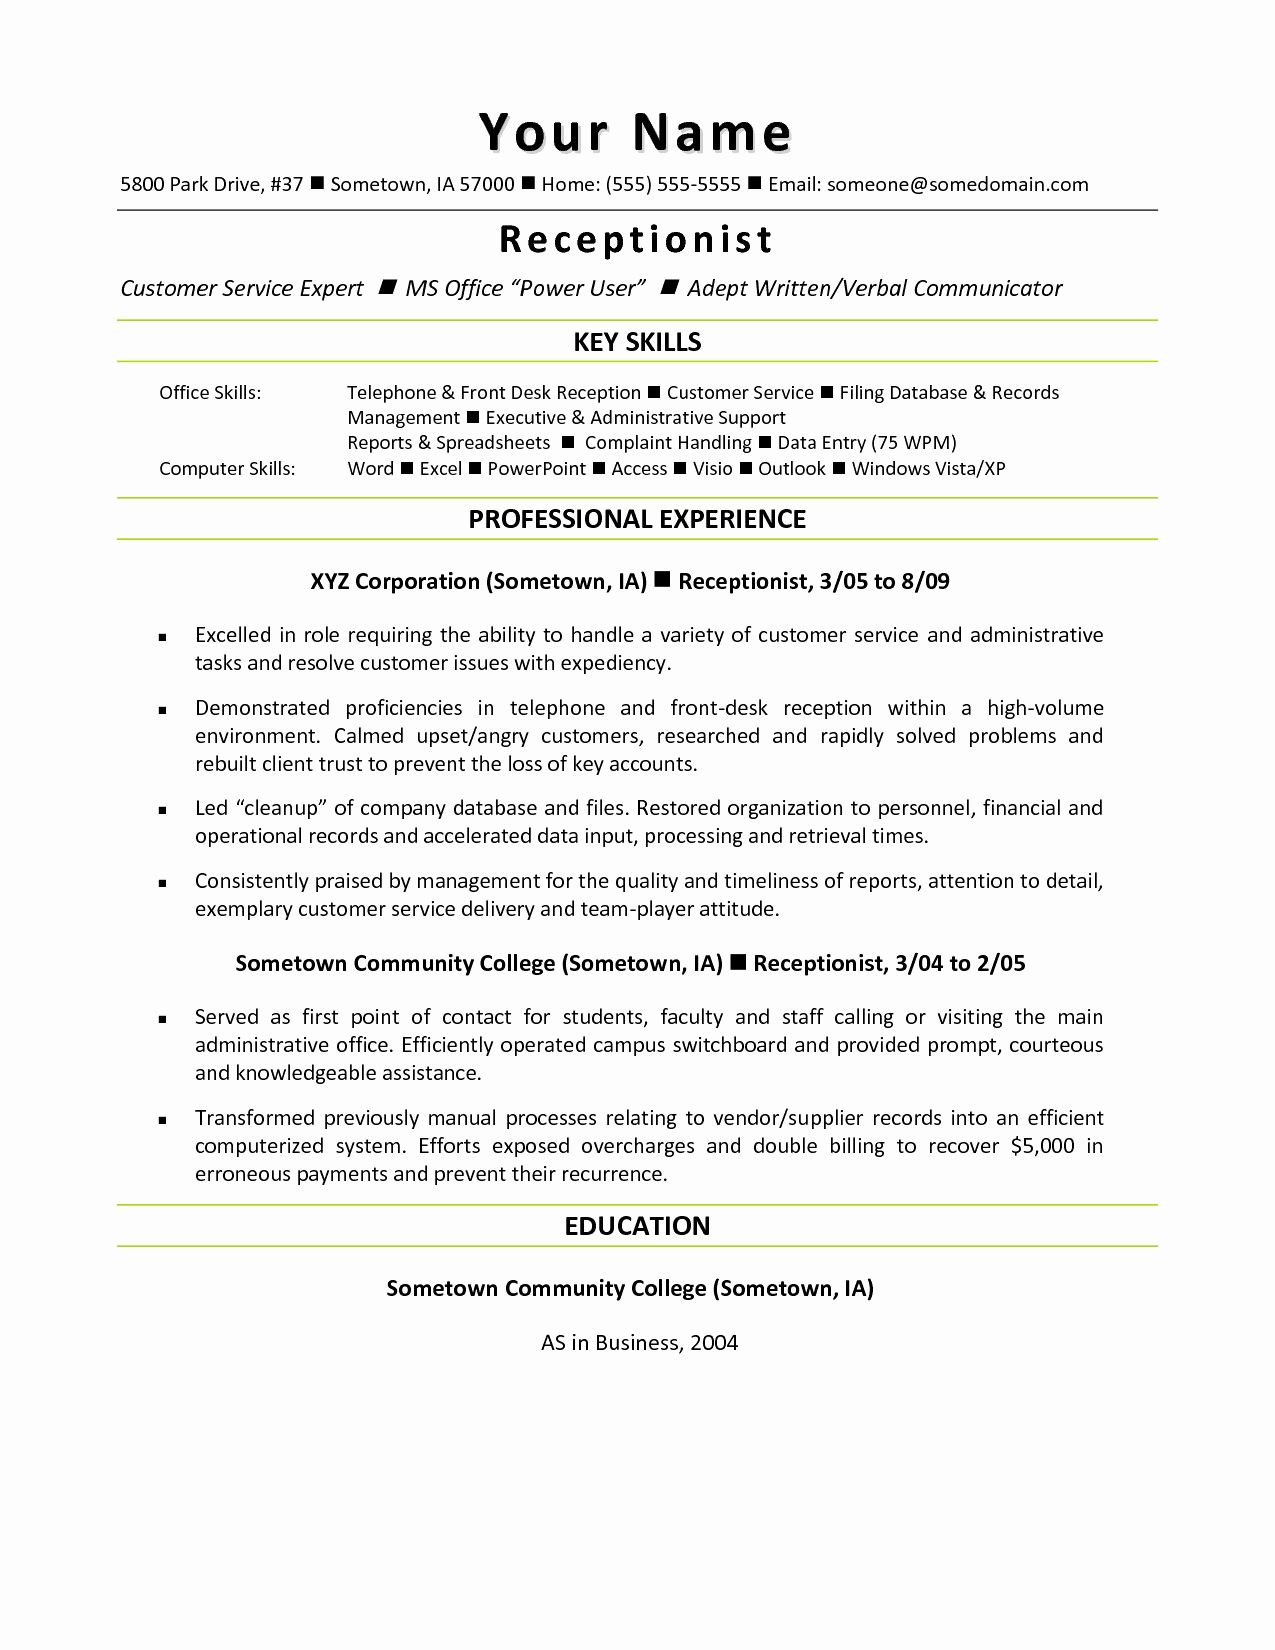 letter of agreement template free Collection-Letter Agreement Template Lovely Sample Cover Letter for Resume Pdf format Letter Agreement Template Awesome Free Resume 0d 20-r